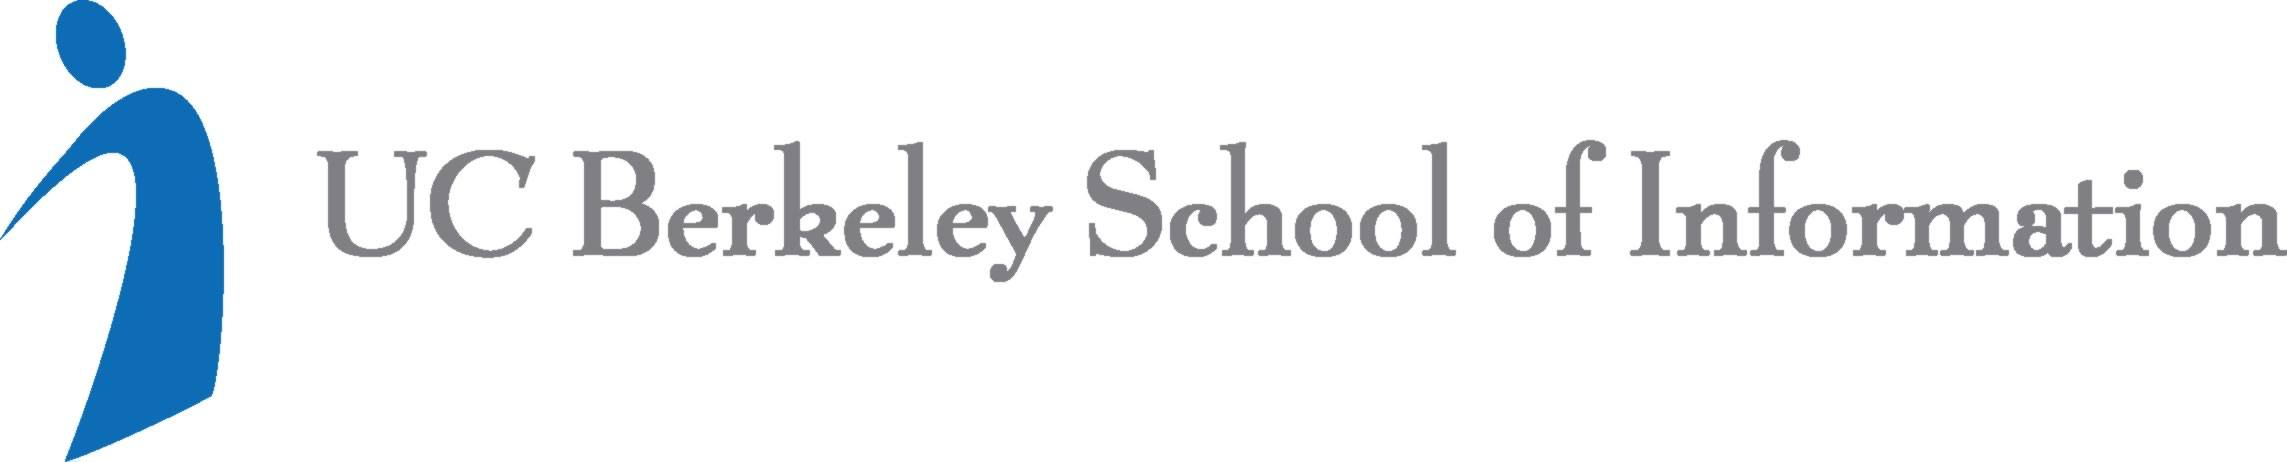 UC Berkeley School of Information Logo